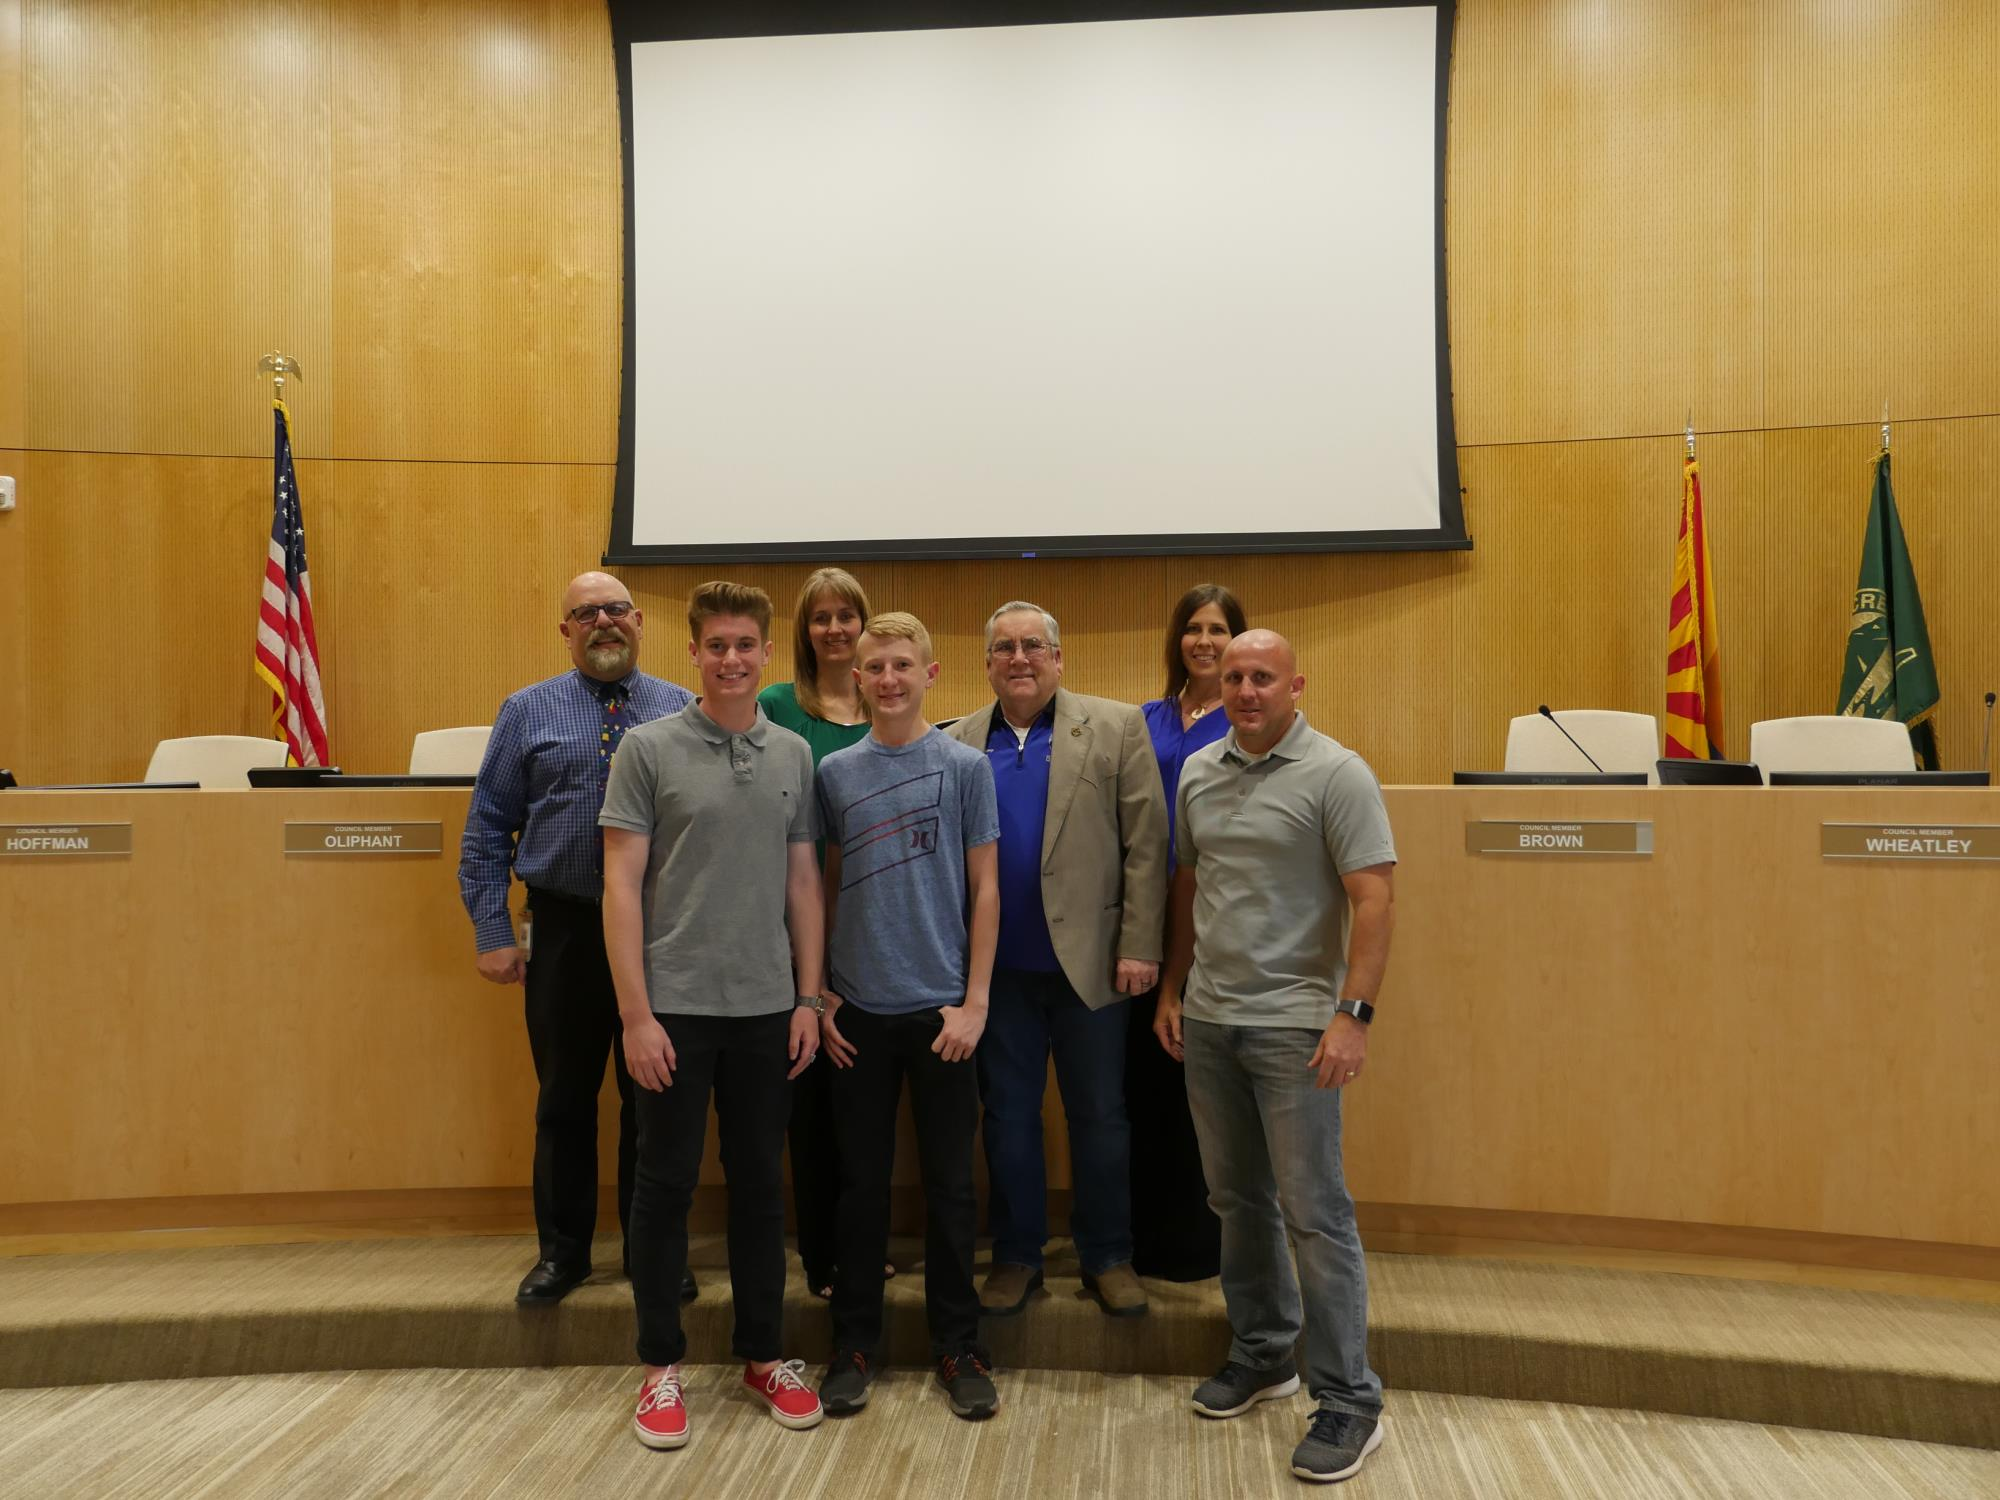 Mayor Barney and the Town Council with the Heritage Academy High School Boys Cross Country Team at the April 3 Town Council Meeting